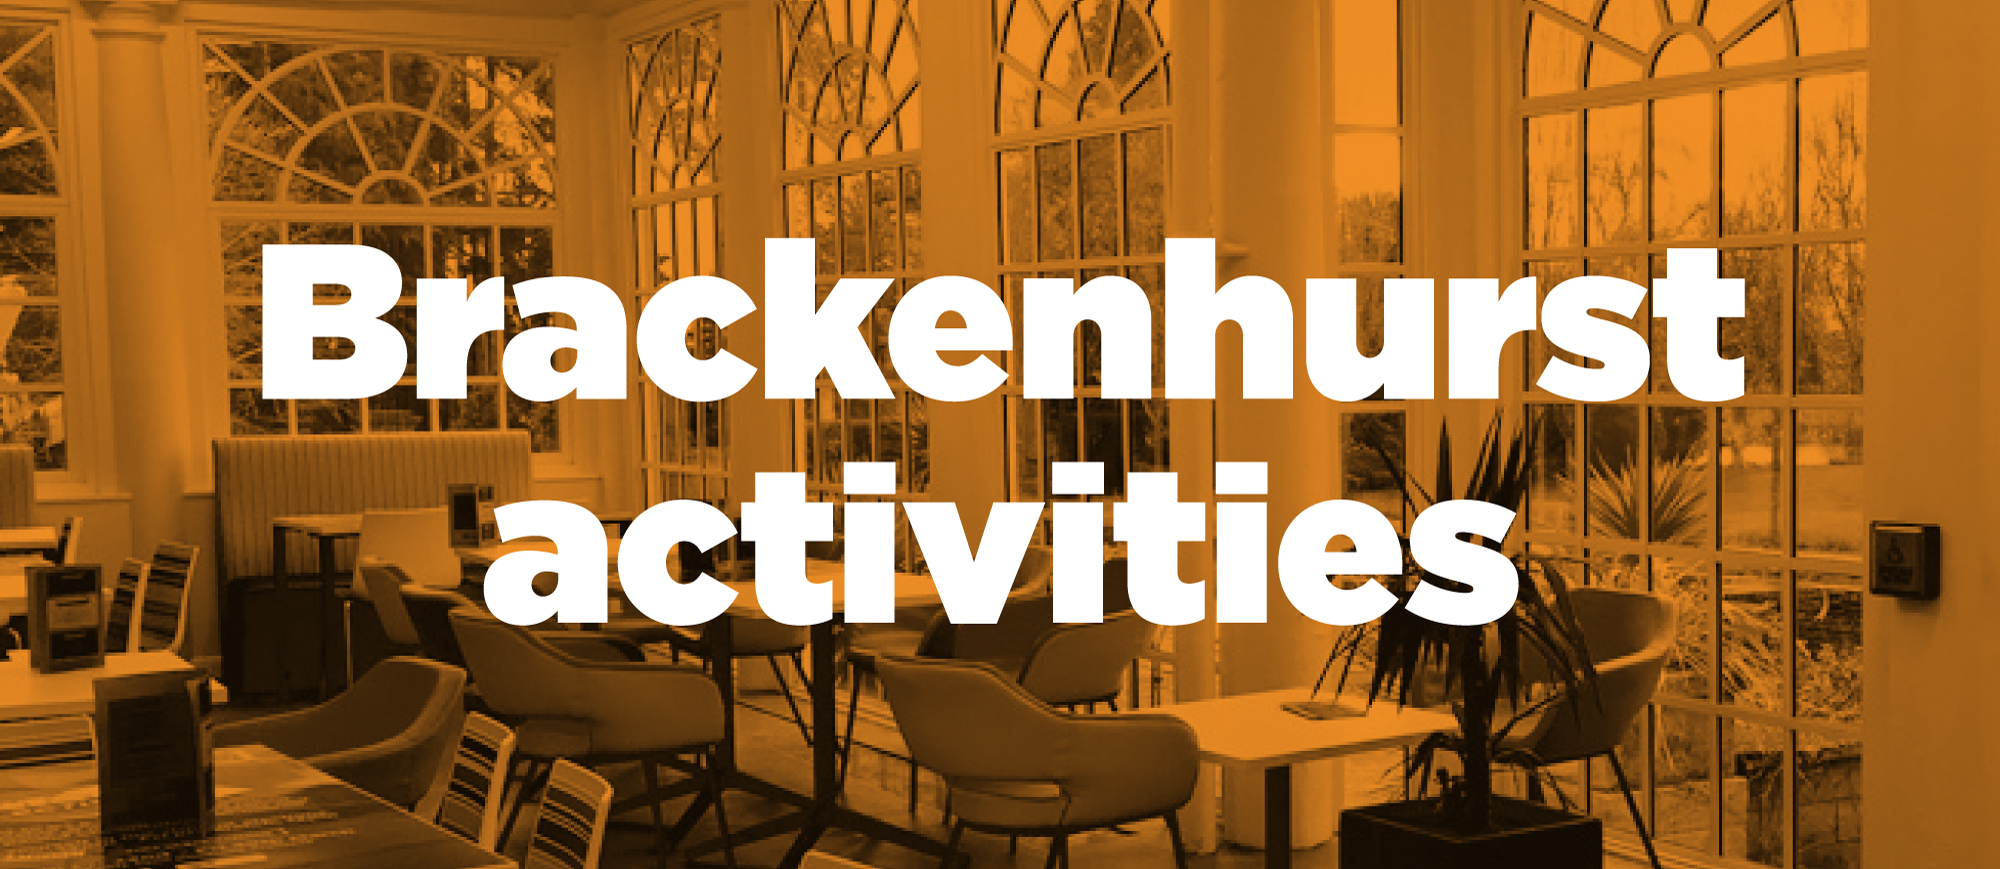 Brackenhurst Activities